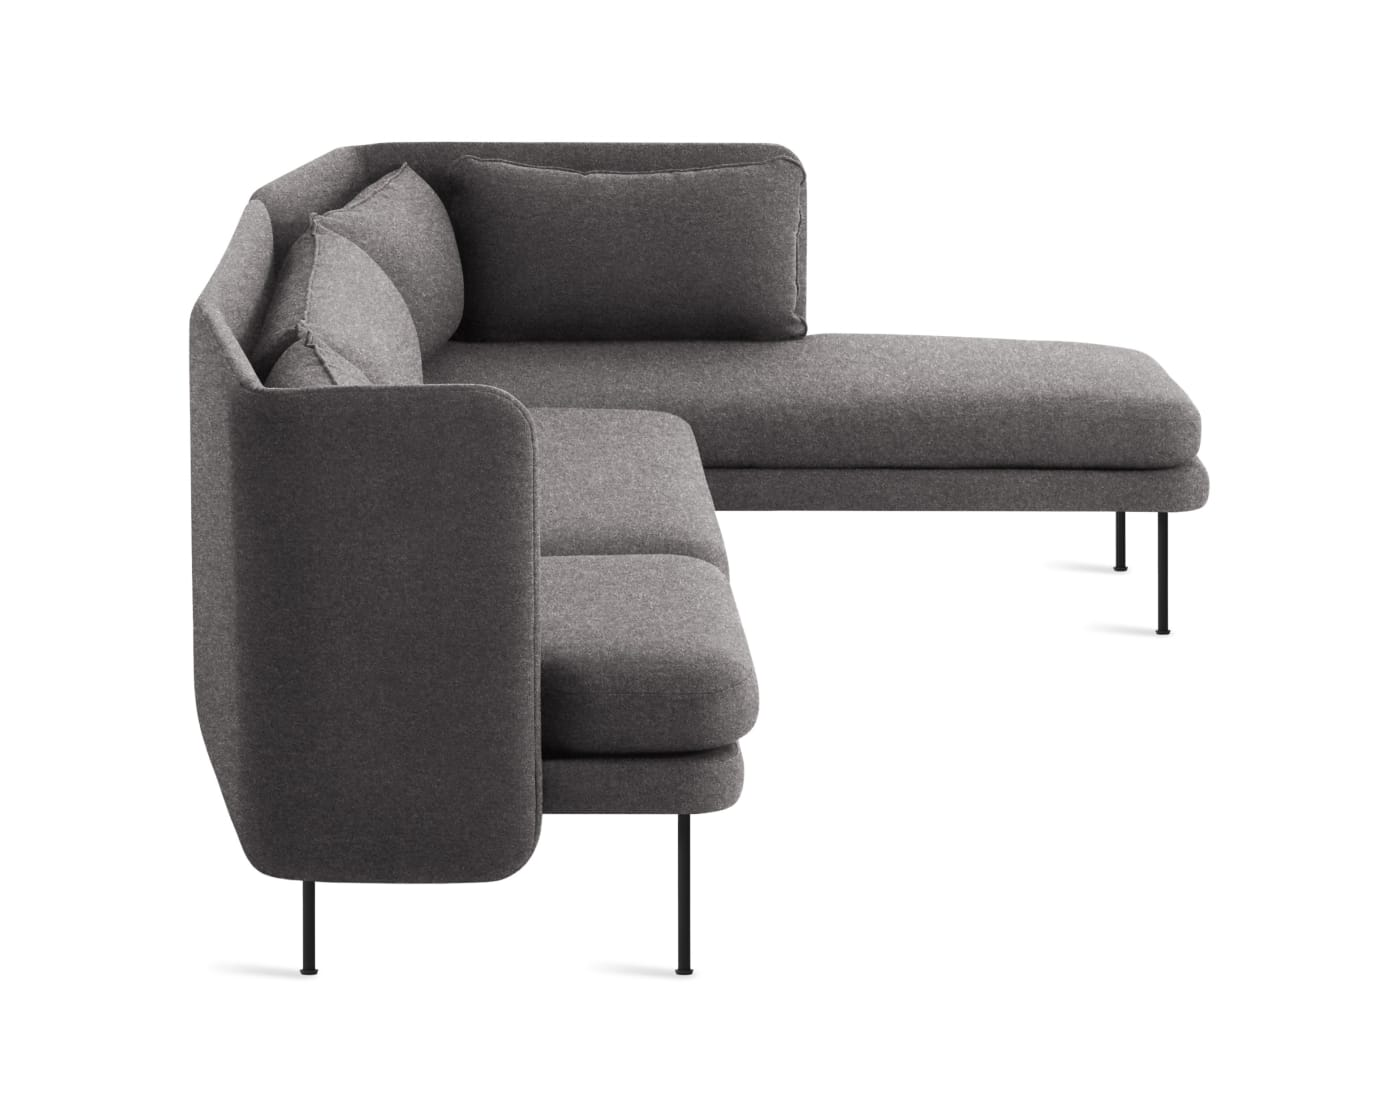 Bloke Sofa with Chaise